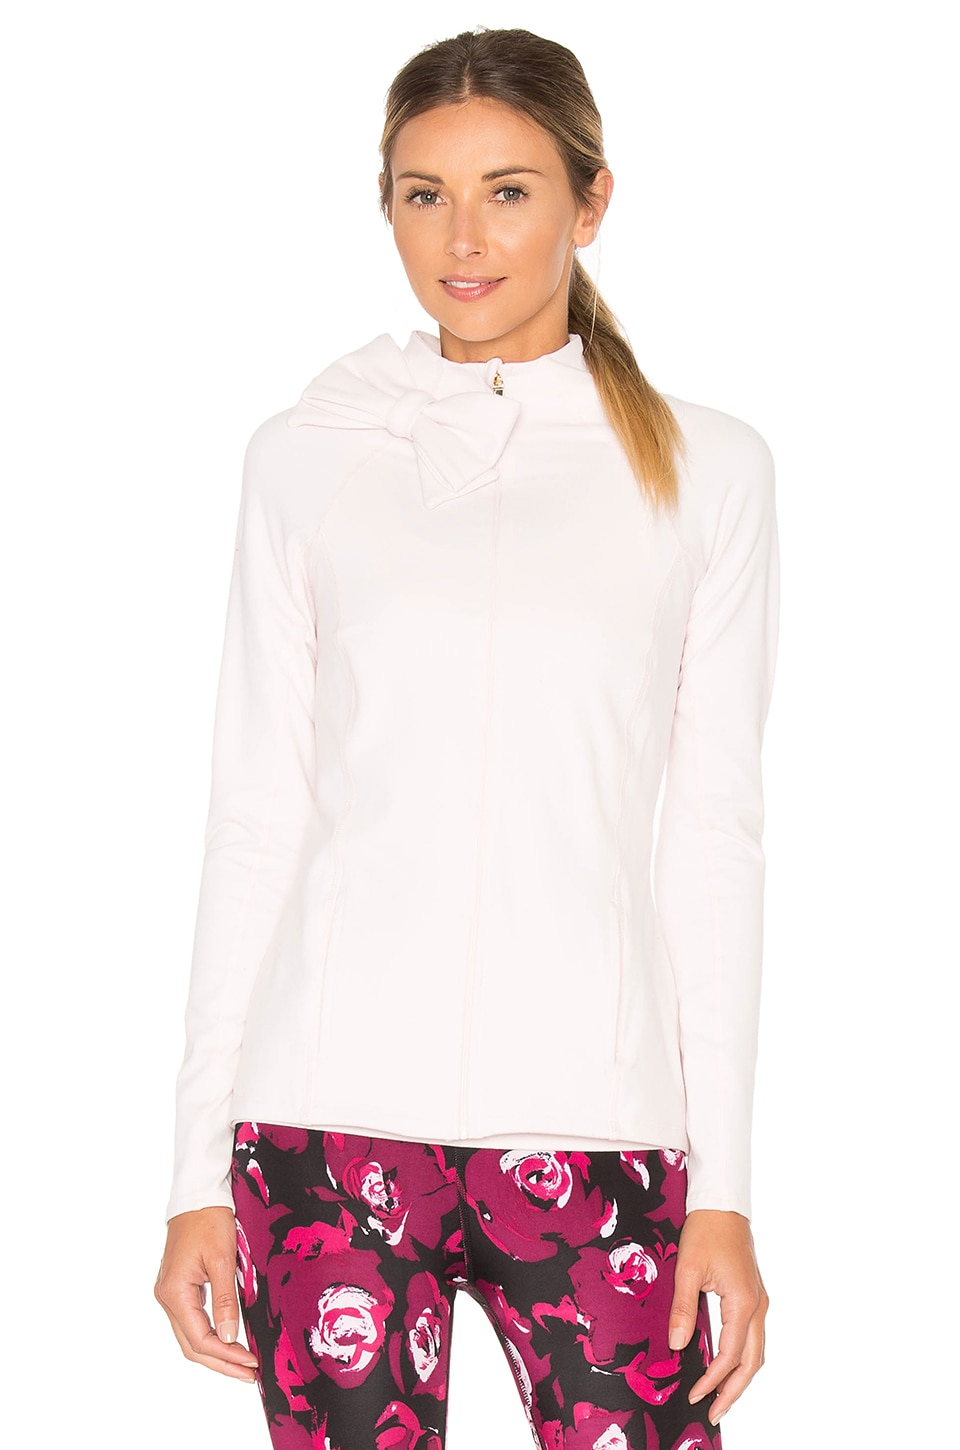 Beyond Yoga x Kate Spade Neck Bow Jacket in Ballet Slipper